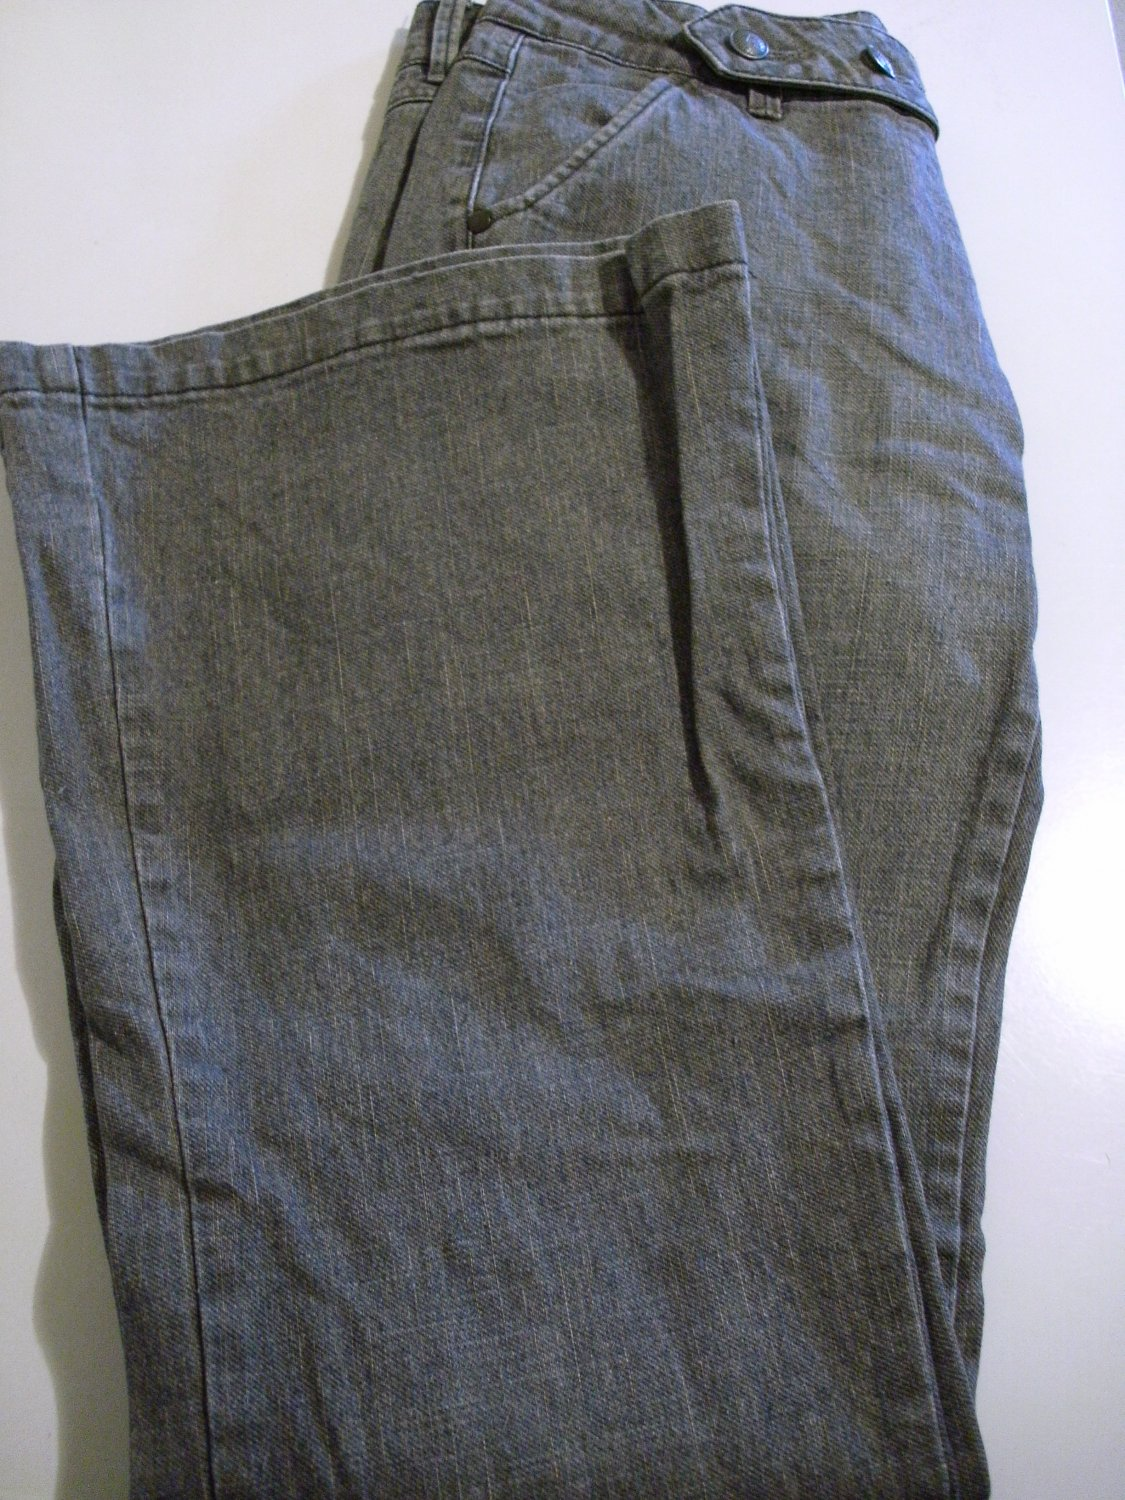 Tyte Jeans - Grey - (Flared) - Size Juniors 9